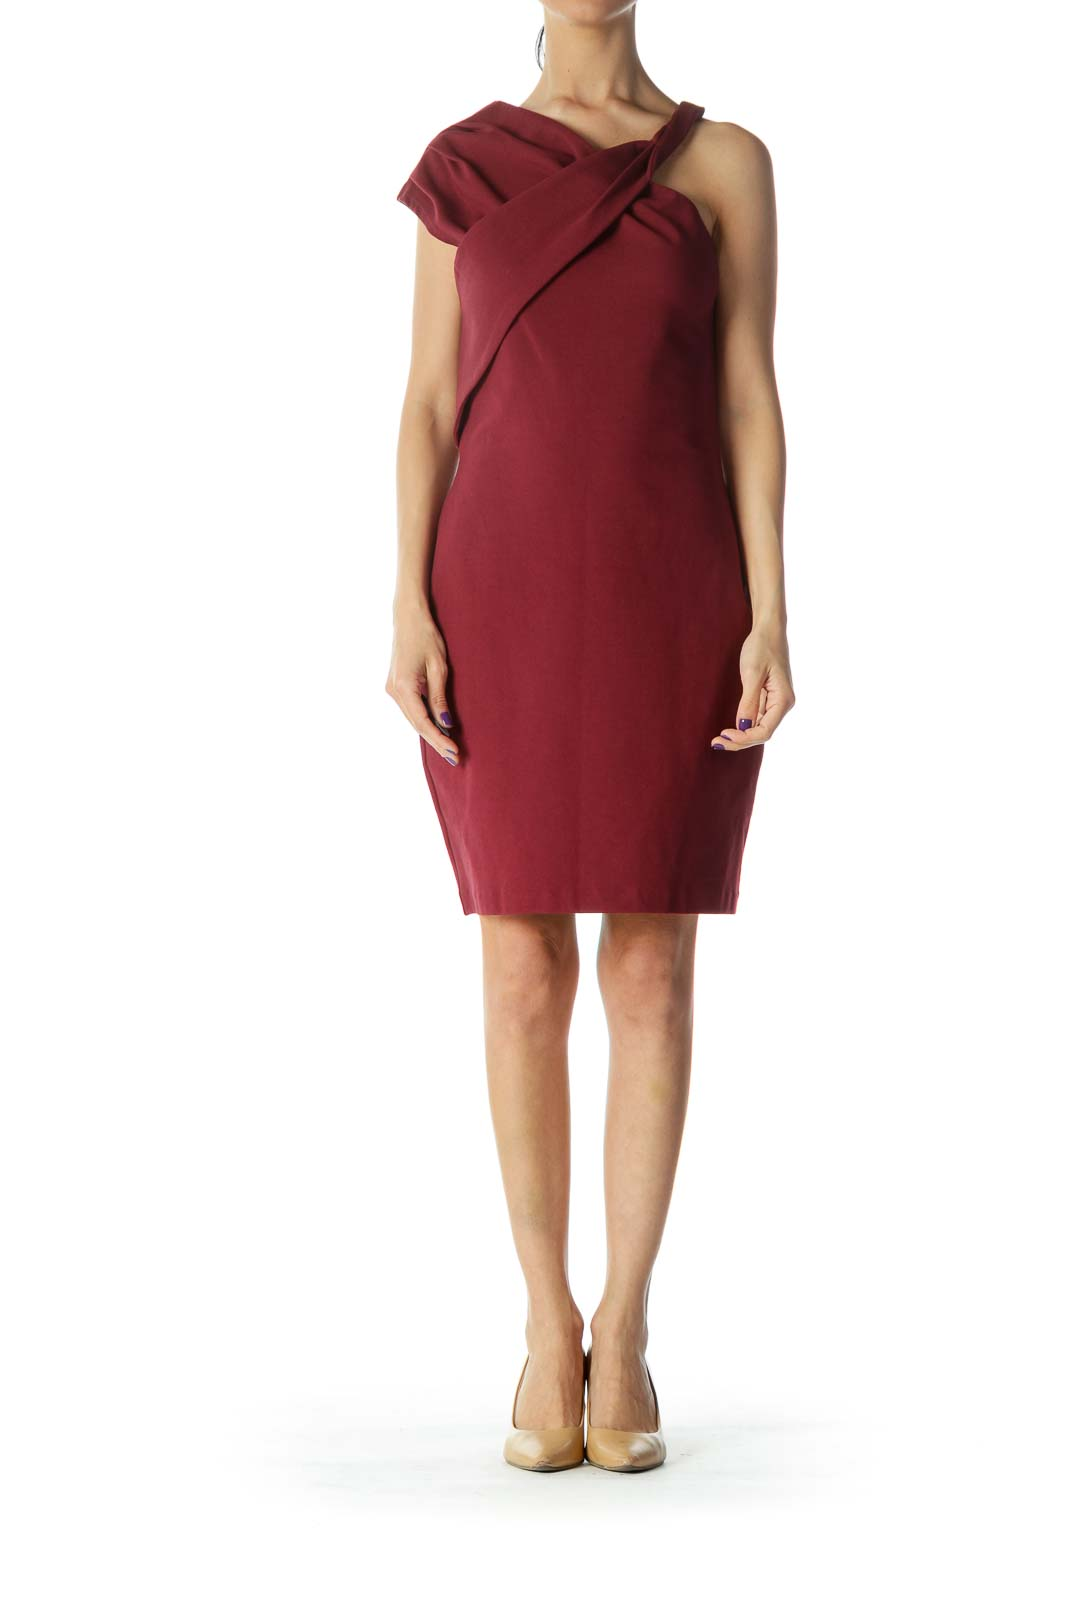 Red Asymmetric Bodycon Dress